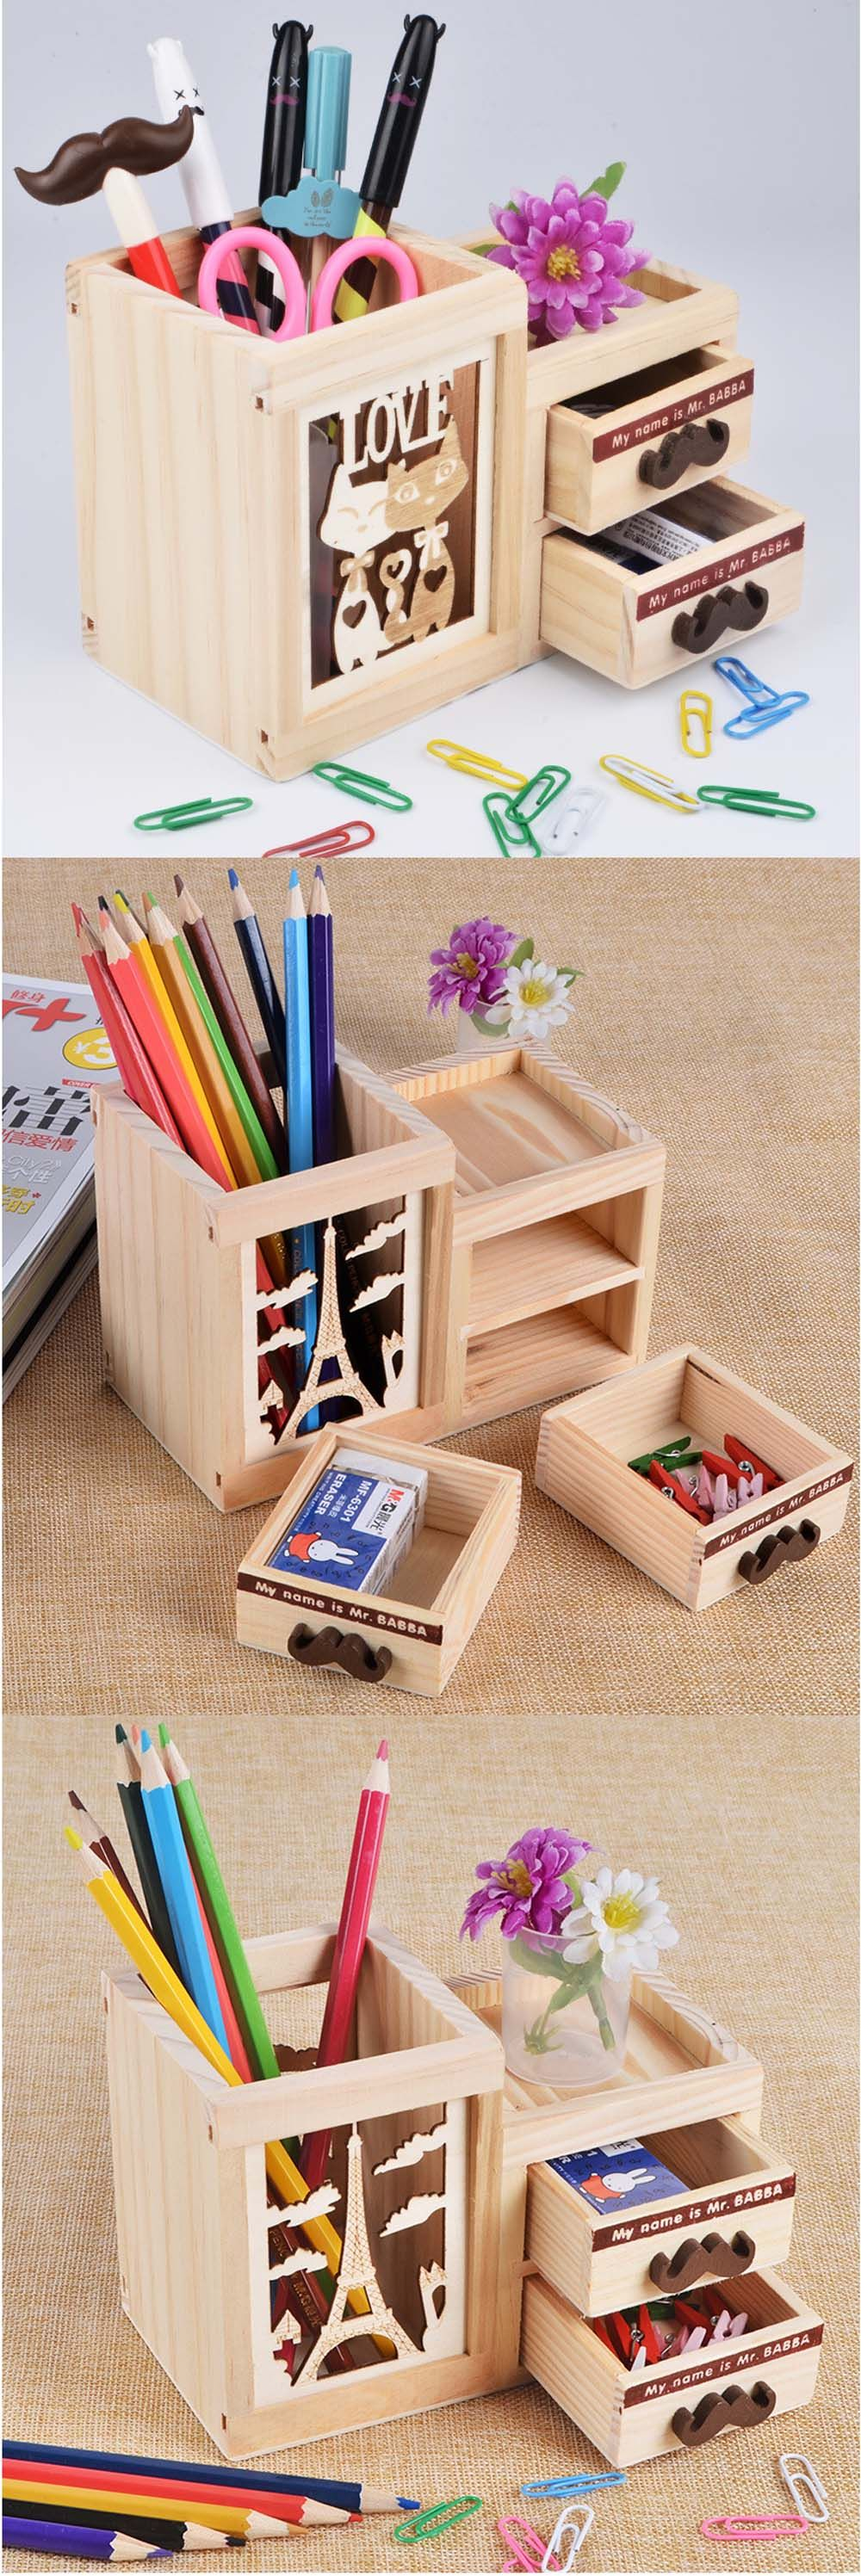 Desktop Hollow Wooden Double Drawer Pen Holder Tower Cat Potala Palace  Office Stationary Supplies Stationary Supplies